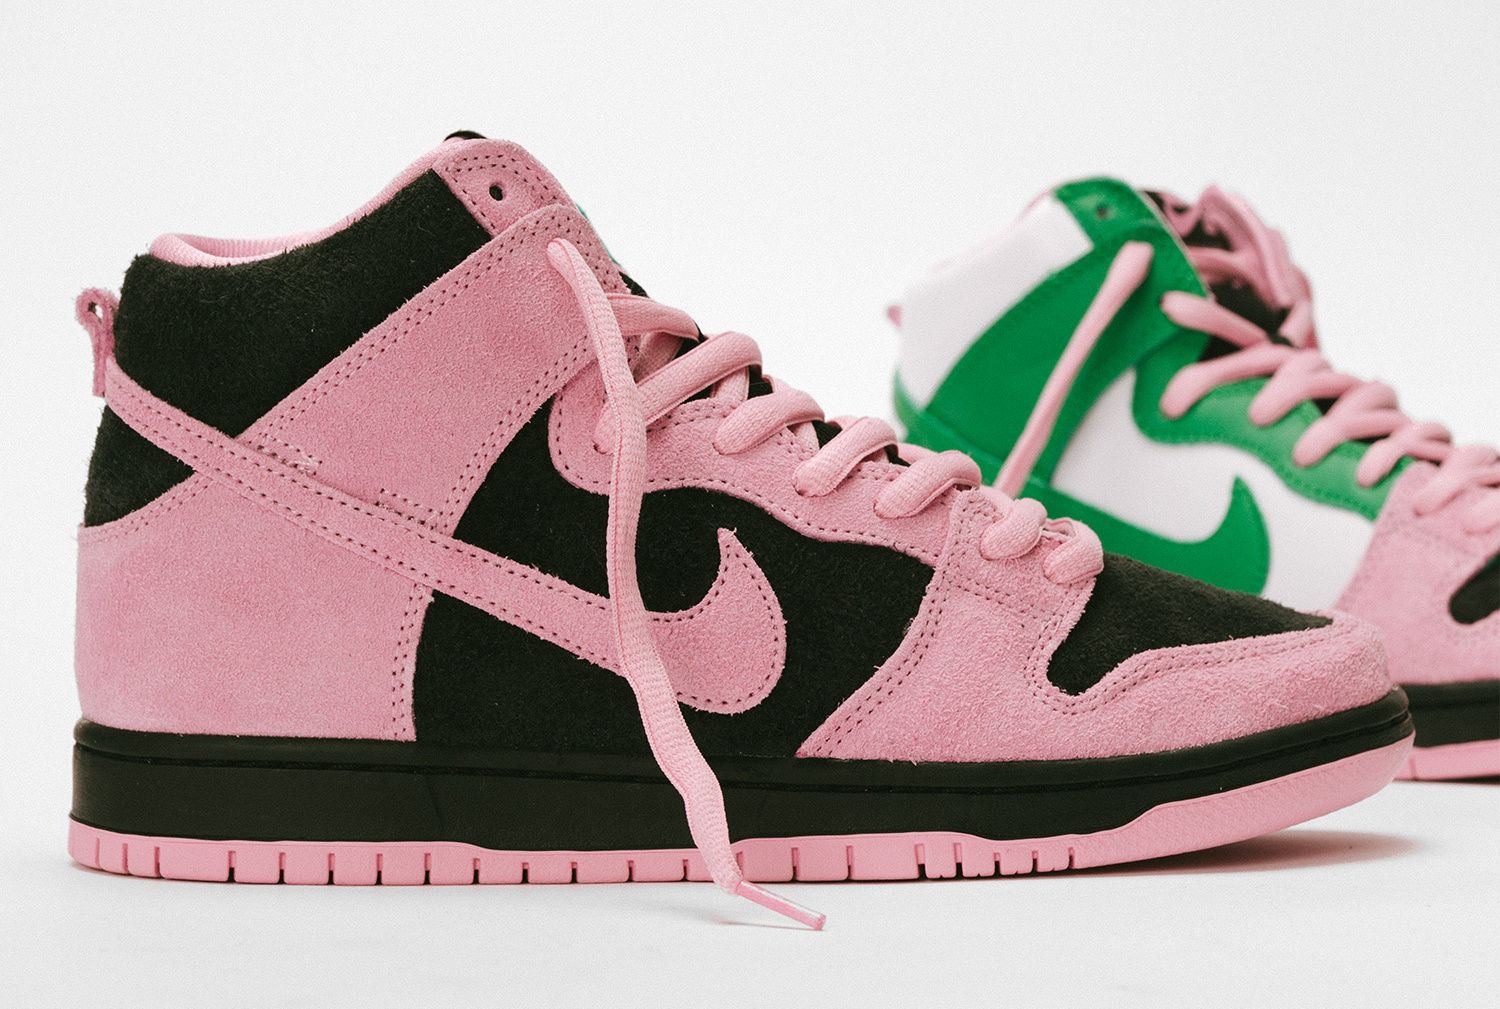 07.12.2020 - Nike SB Dunk High Pro Inverted Celtic